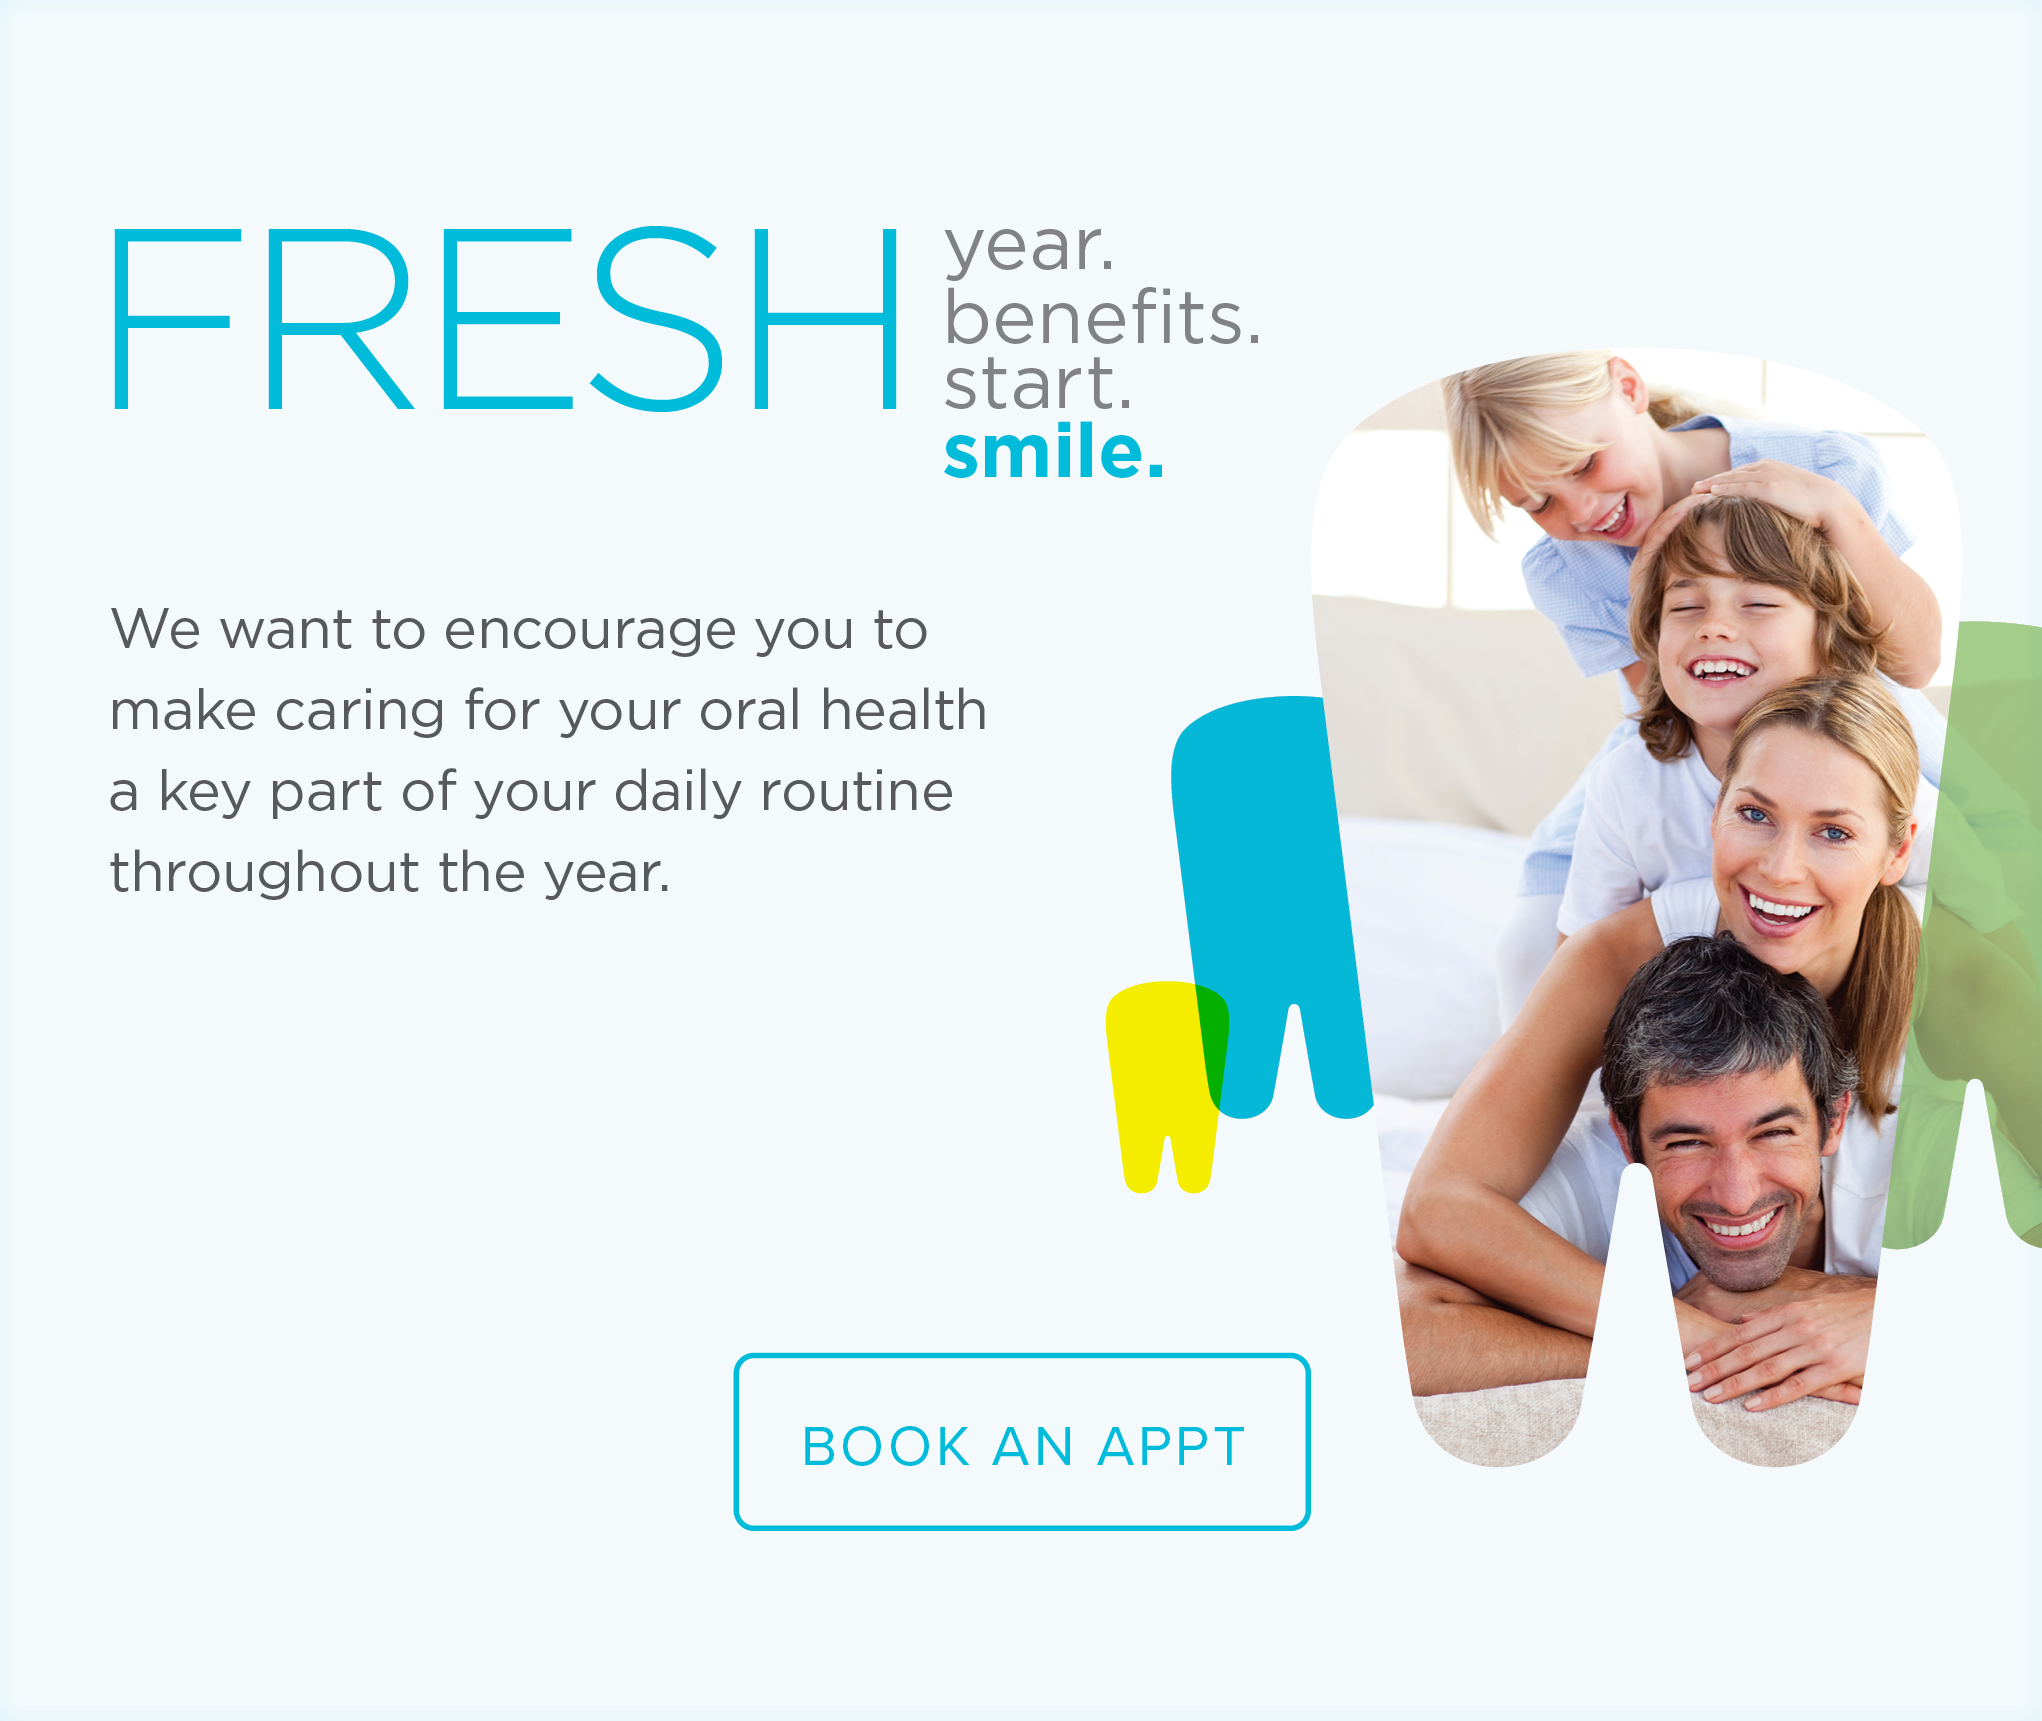 Marketplace Smiles Dentistry and Orthodontics - Make the Most of Your Benefits